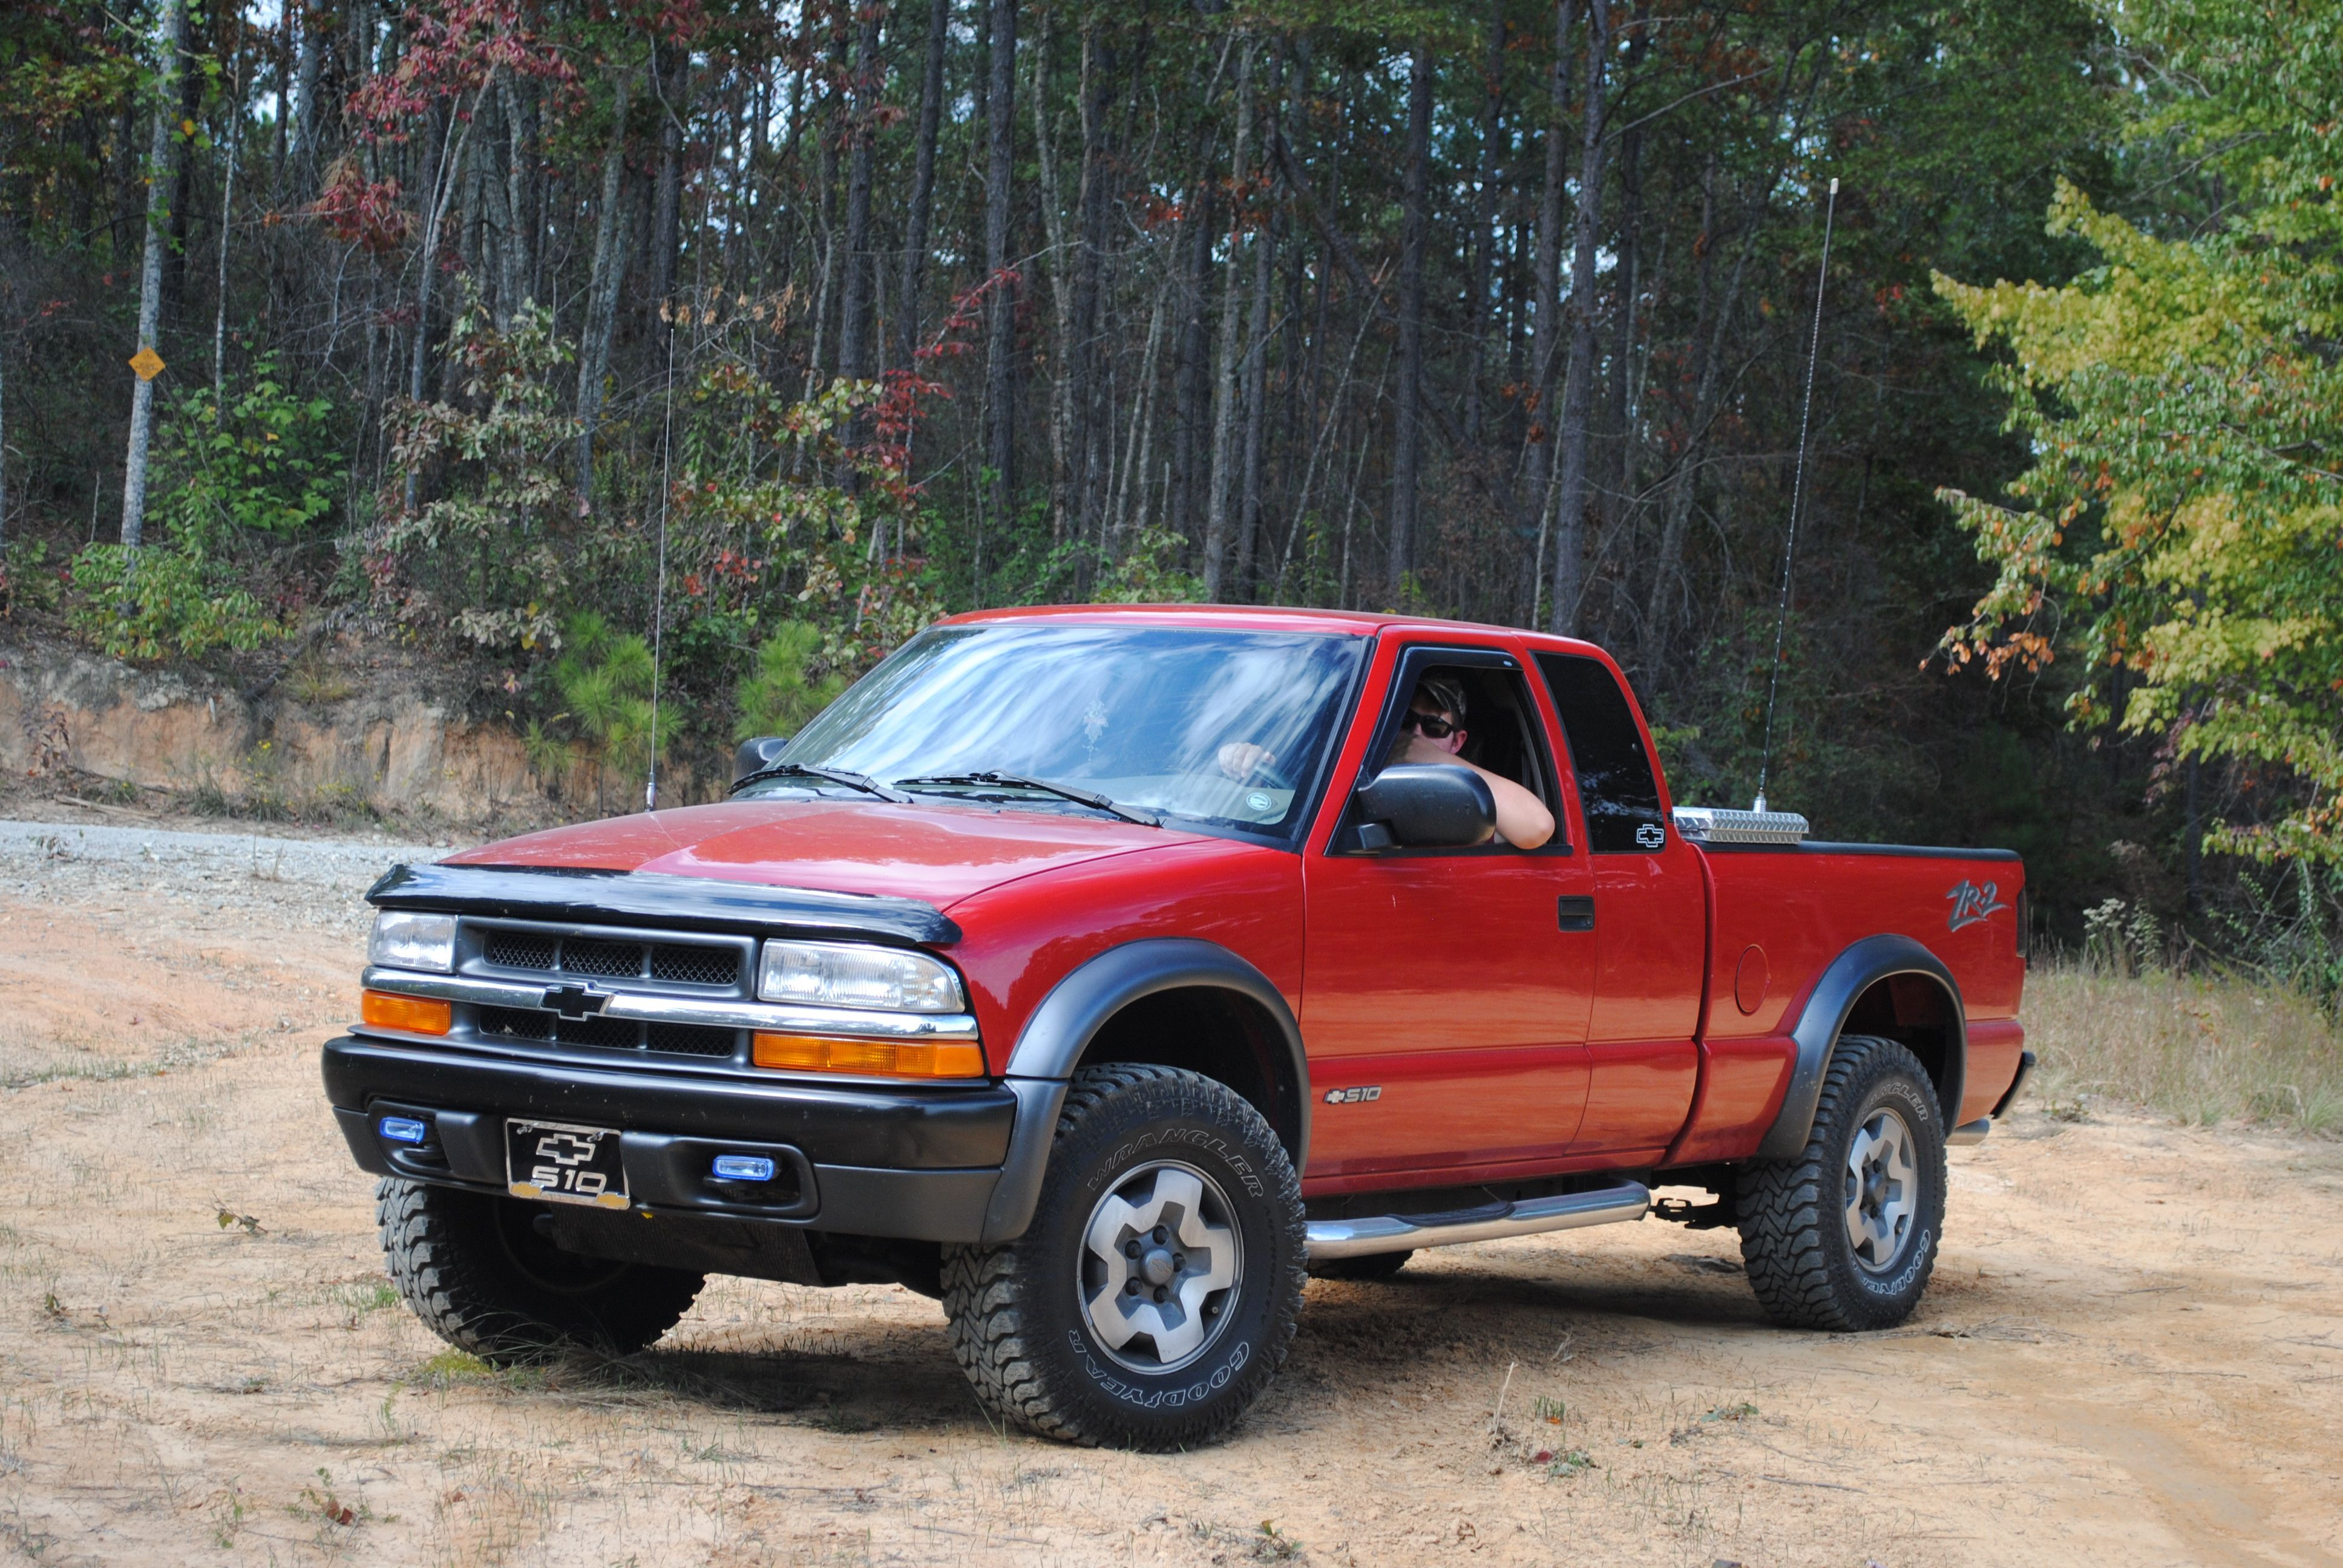 S10 zr2 truck stuff and some cars now xd pinterest for General motors chevrolet customer service